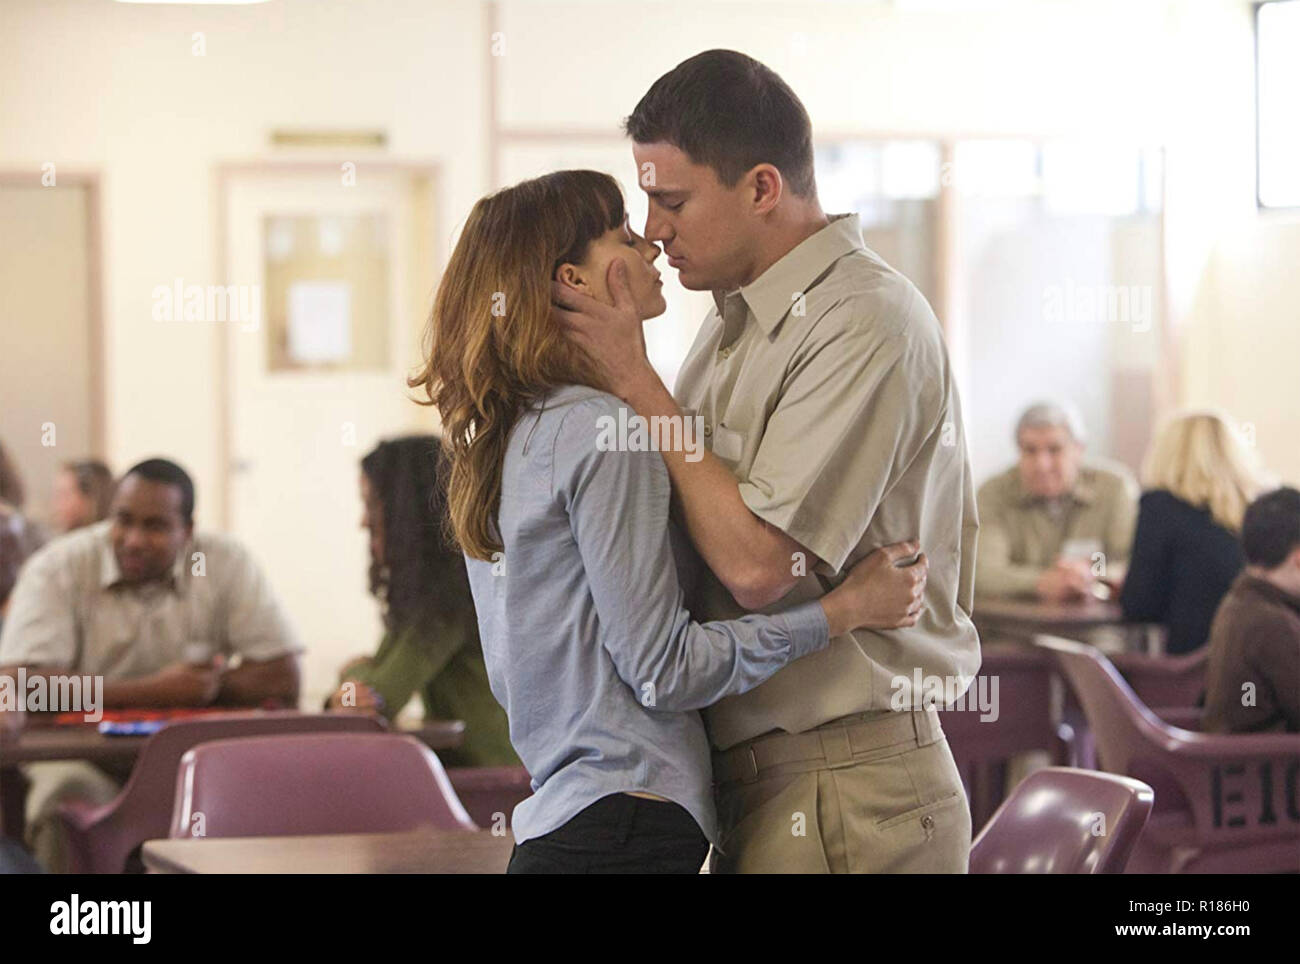 SIDE EFFECTS 2013 Endgame Entertainment film with Rooney Mara and Channing Tatum - Stock Image